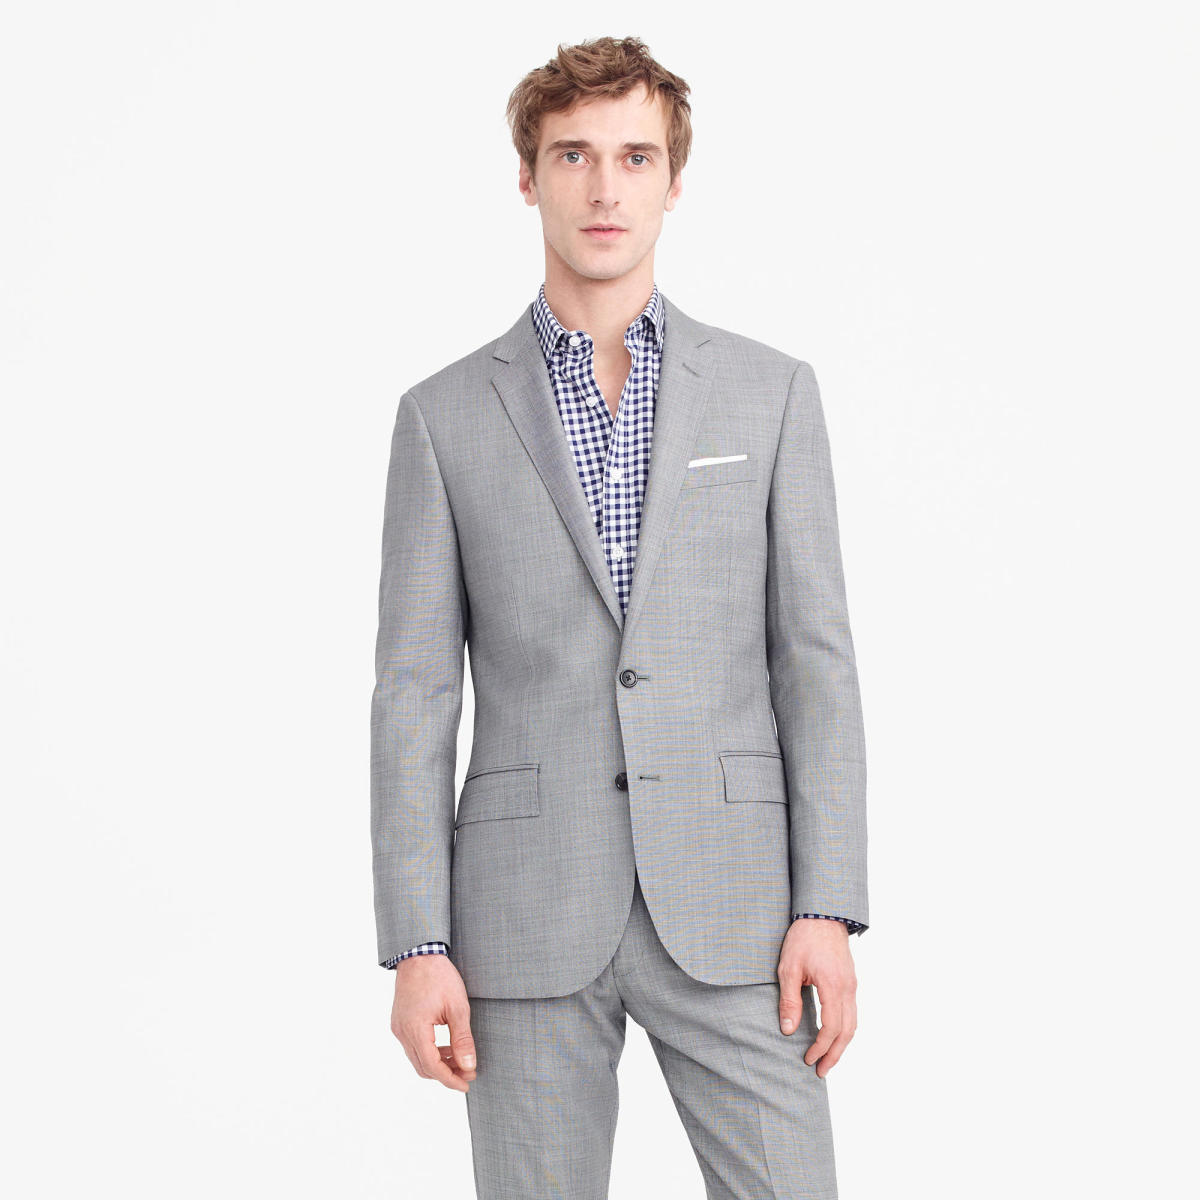 J.Crew Stretch Suits